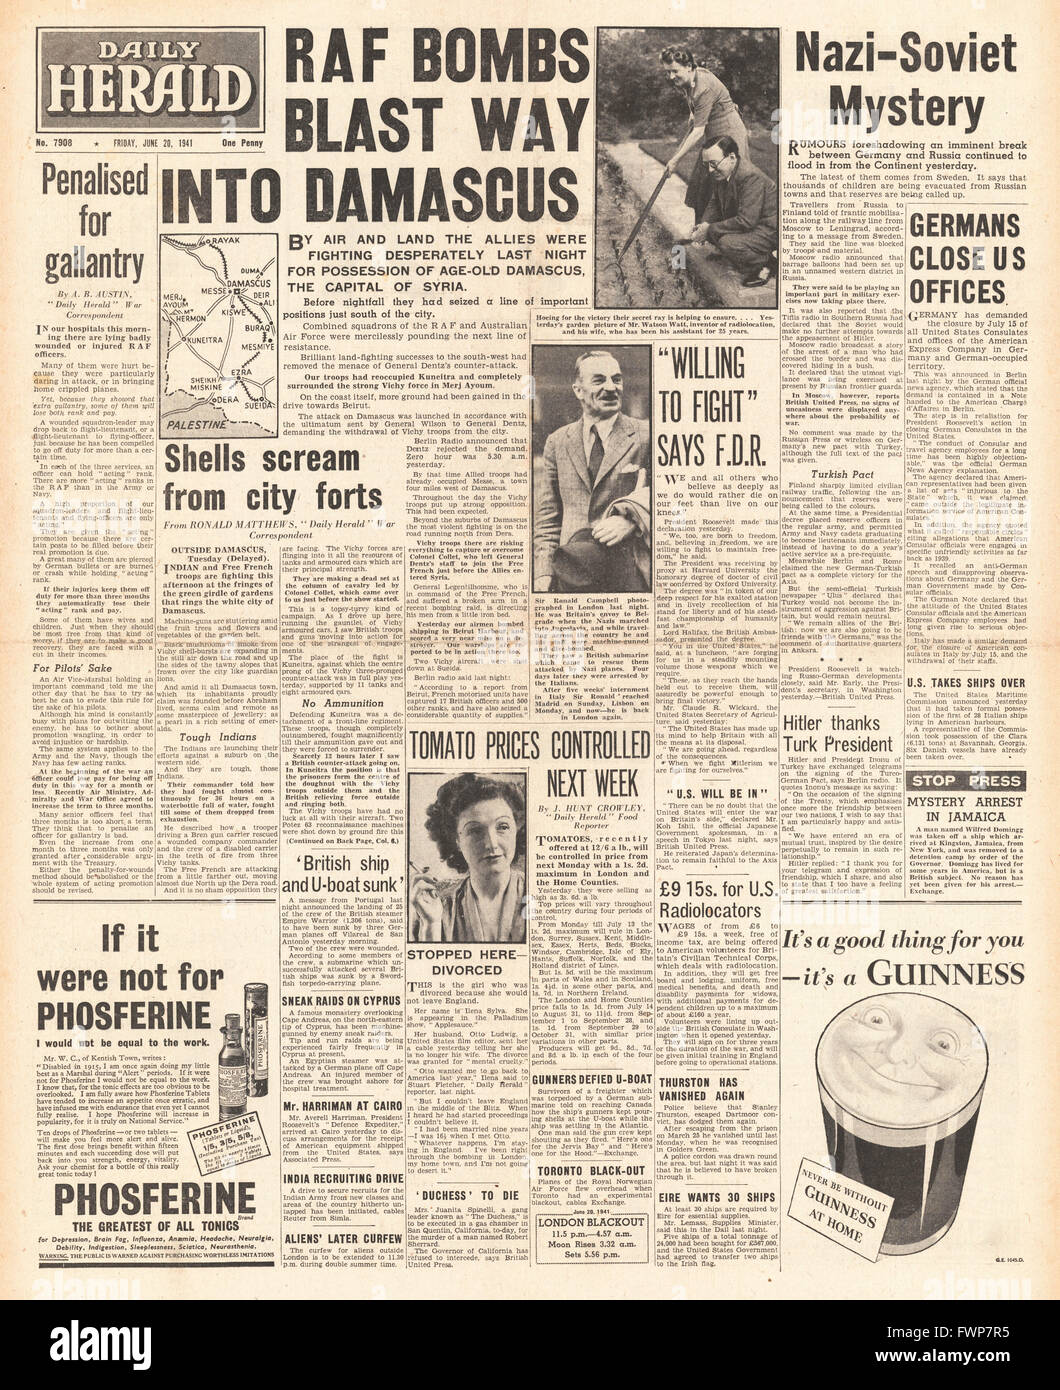 1941 front page  Daily Herald Allied forces bombard Damascus - Stock Image